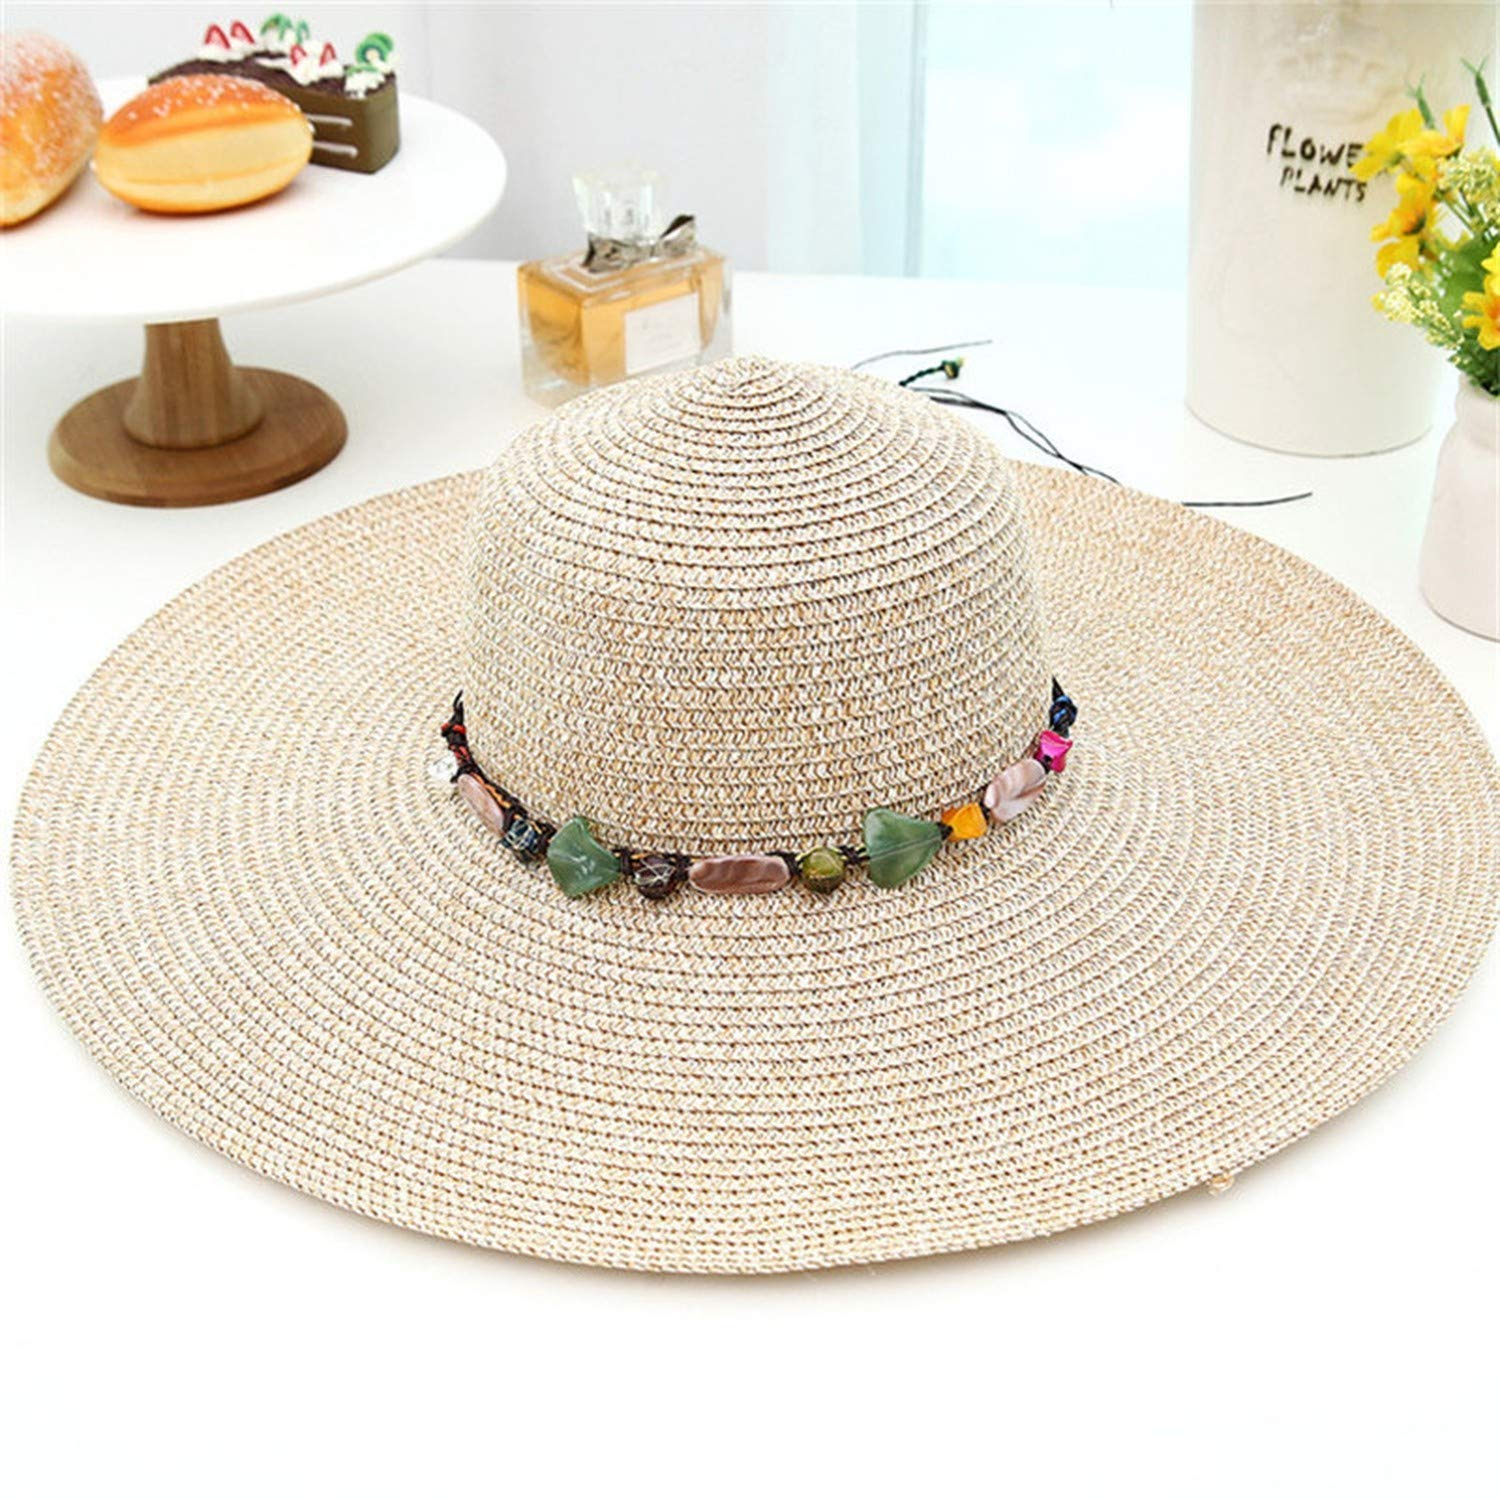 Fortune-god Women Big Brim Sun Hats Foldable Colorful Stone Hand Made Straw Beach Hat